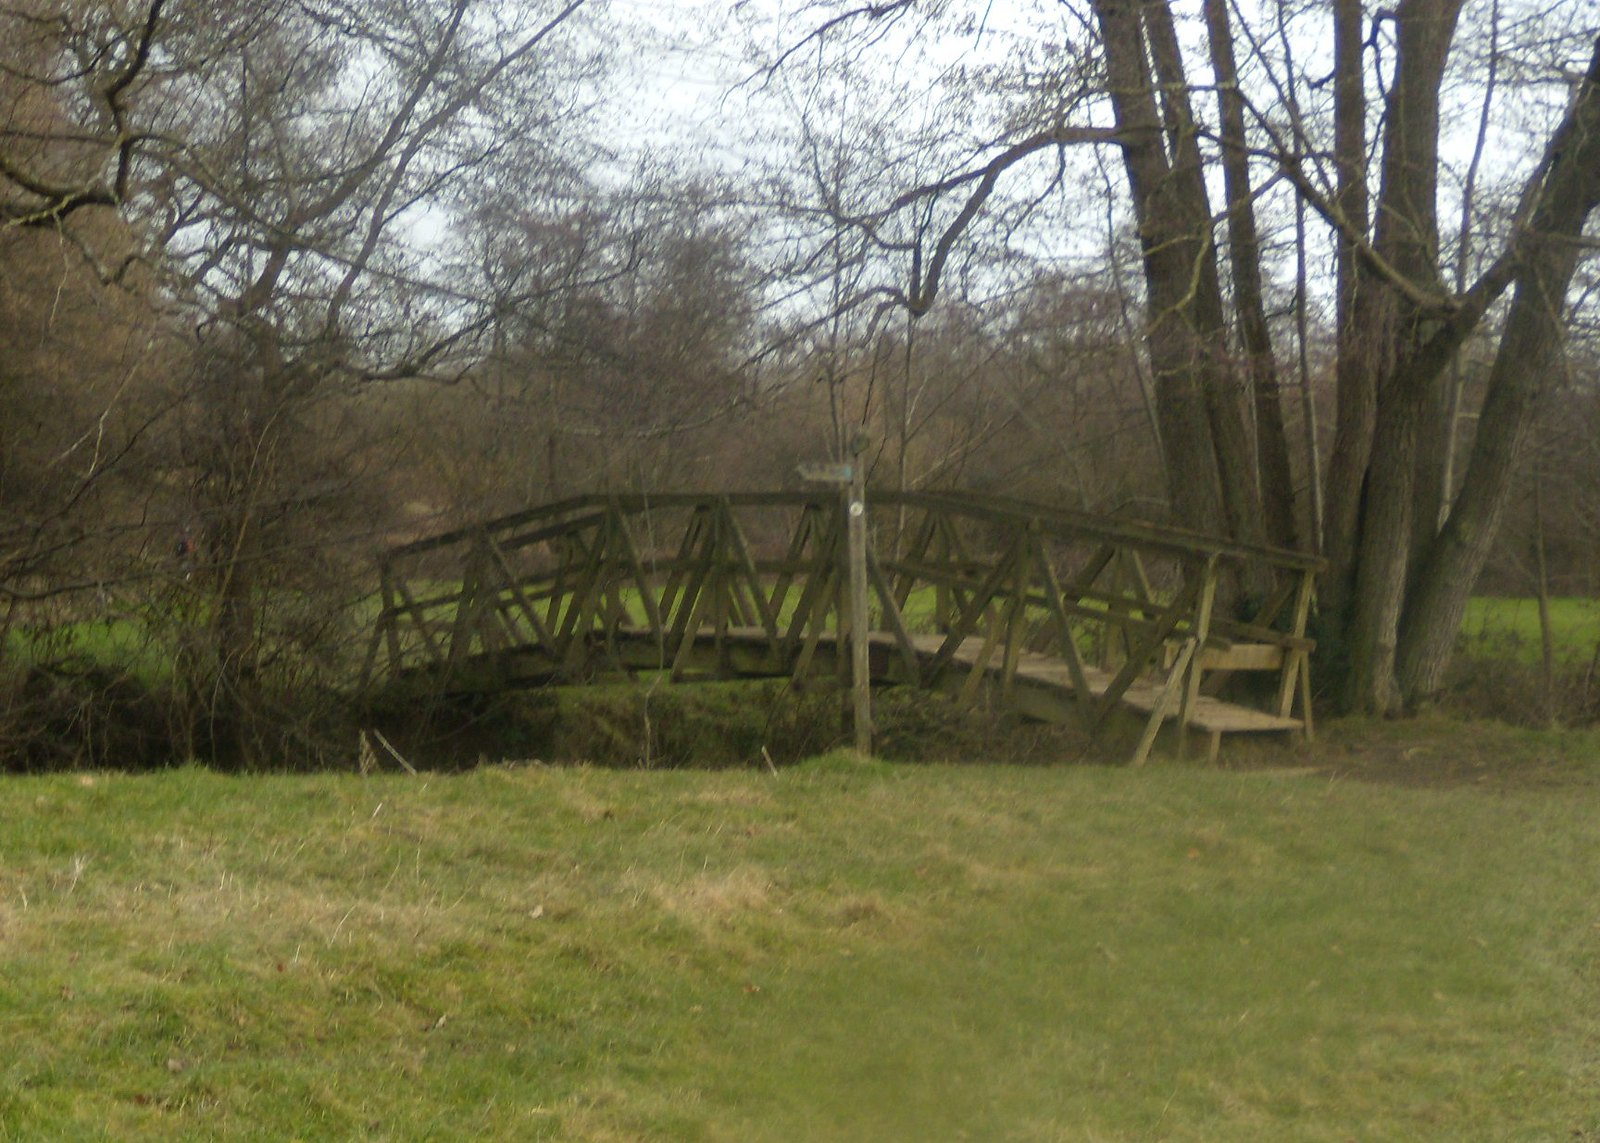 Humpback bridge Balcombe round (winter)